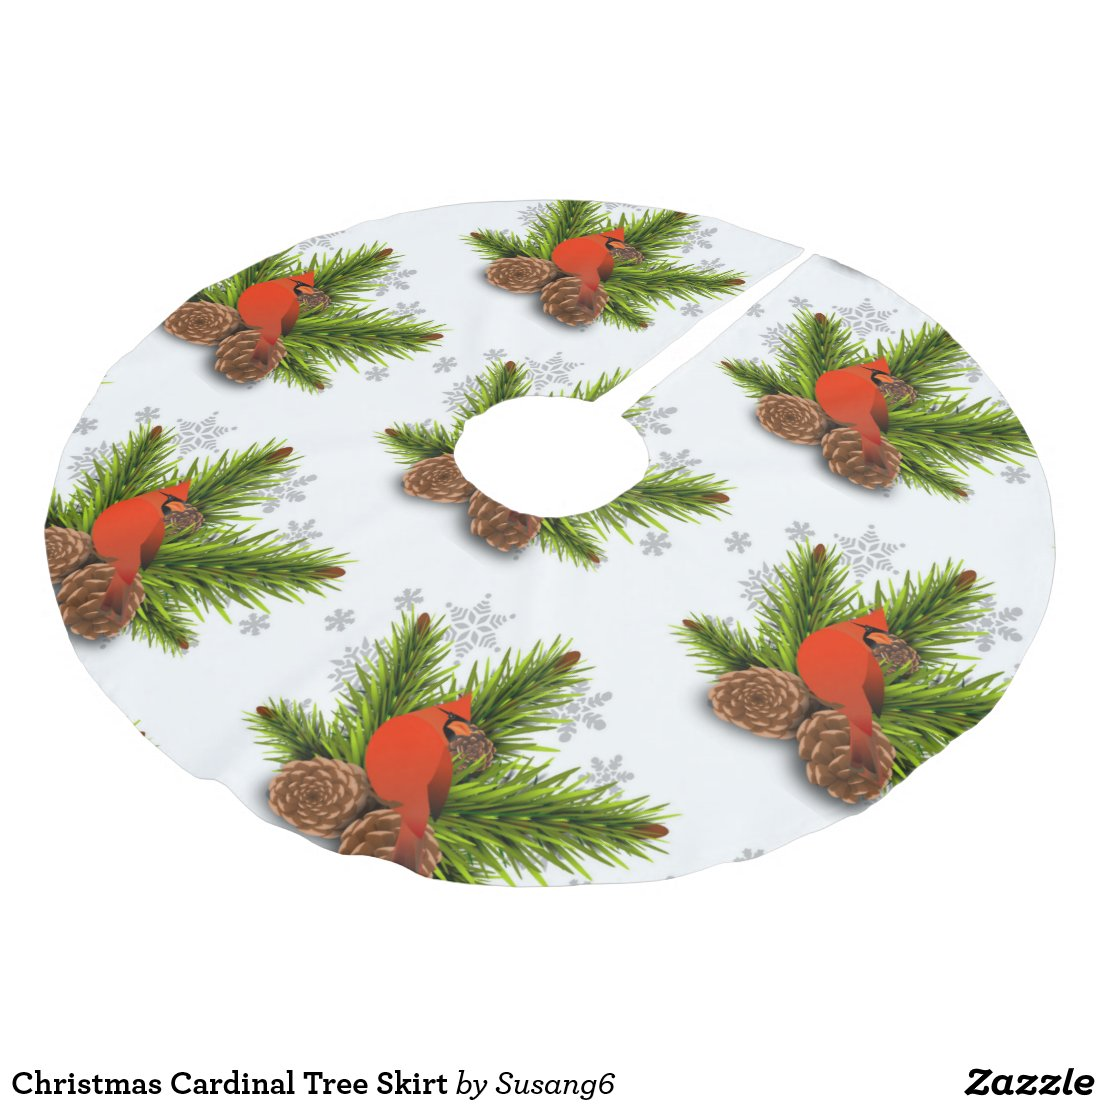 Christmas Cardinal Tree Skirt